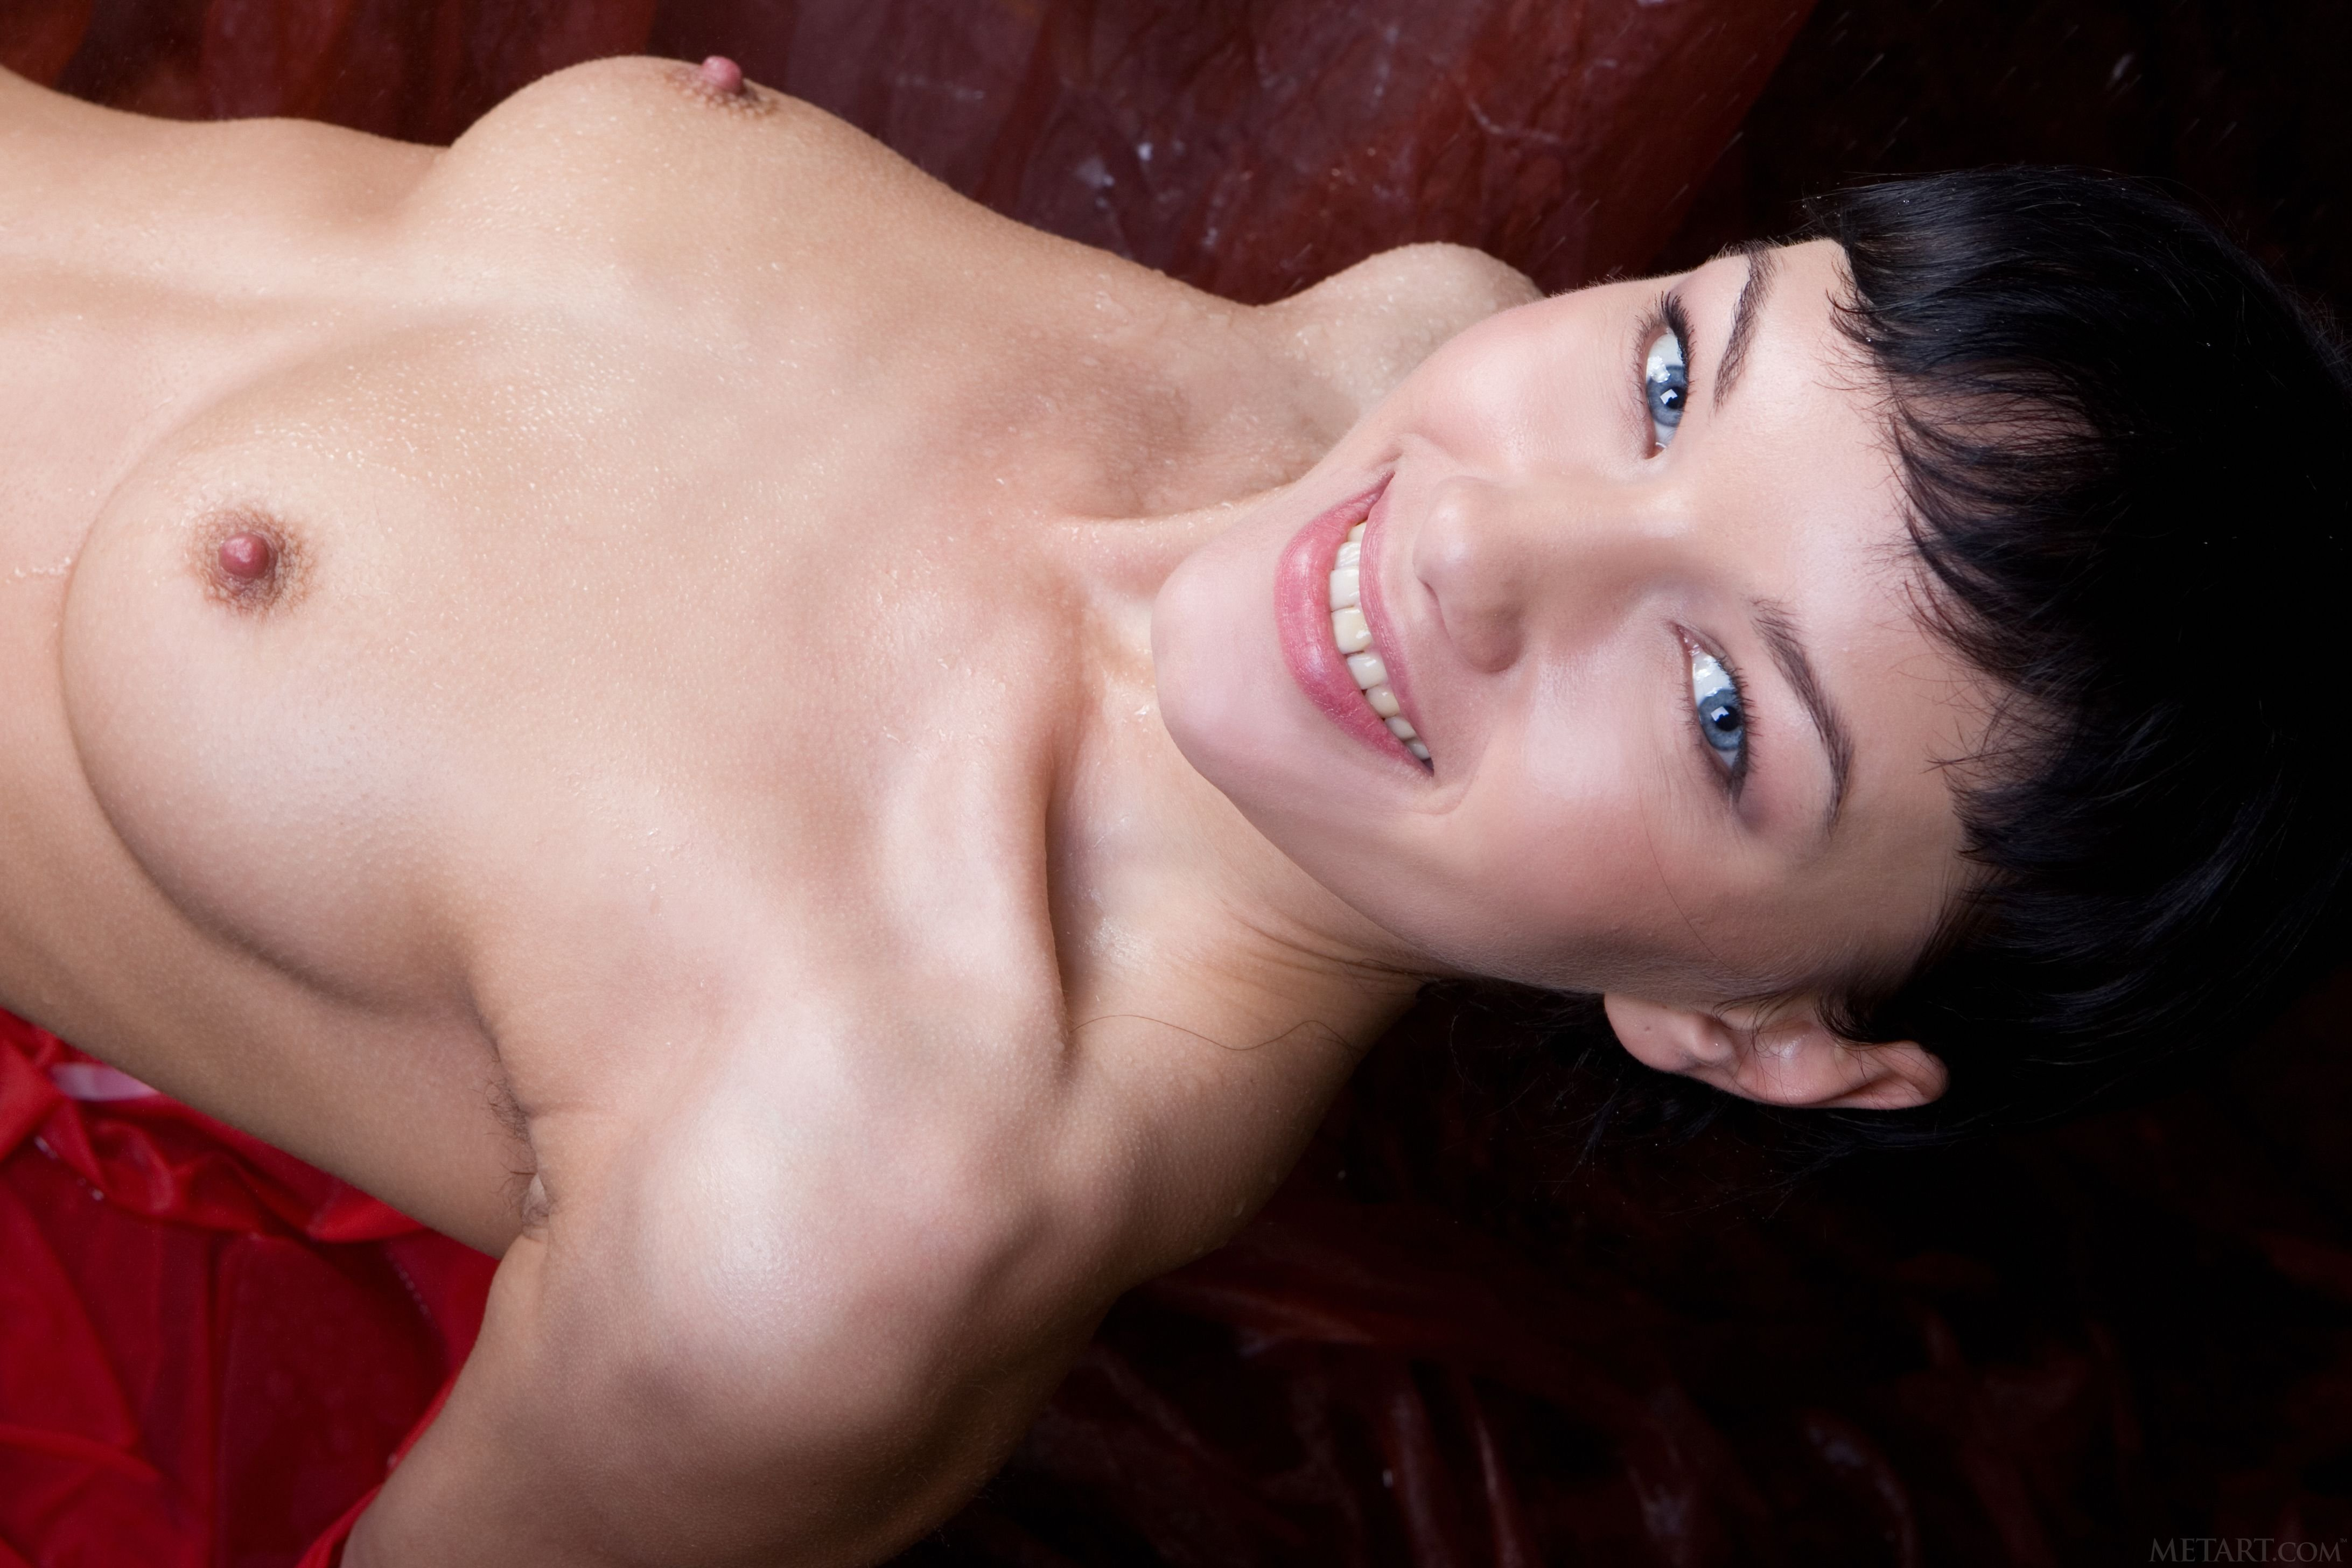 Jane and loreen nude in